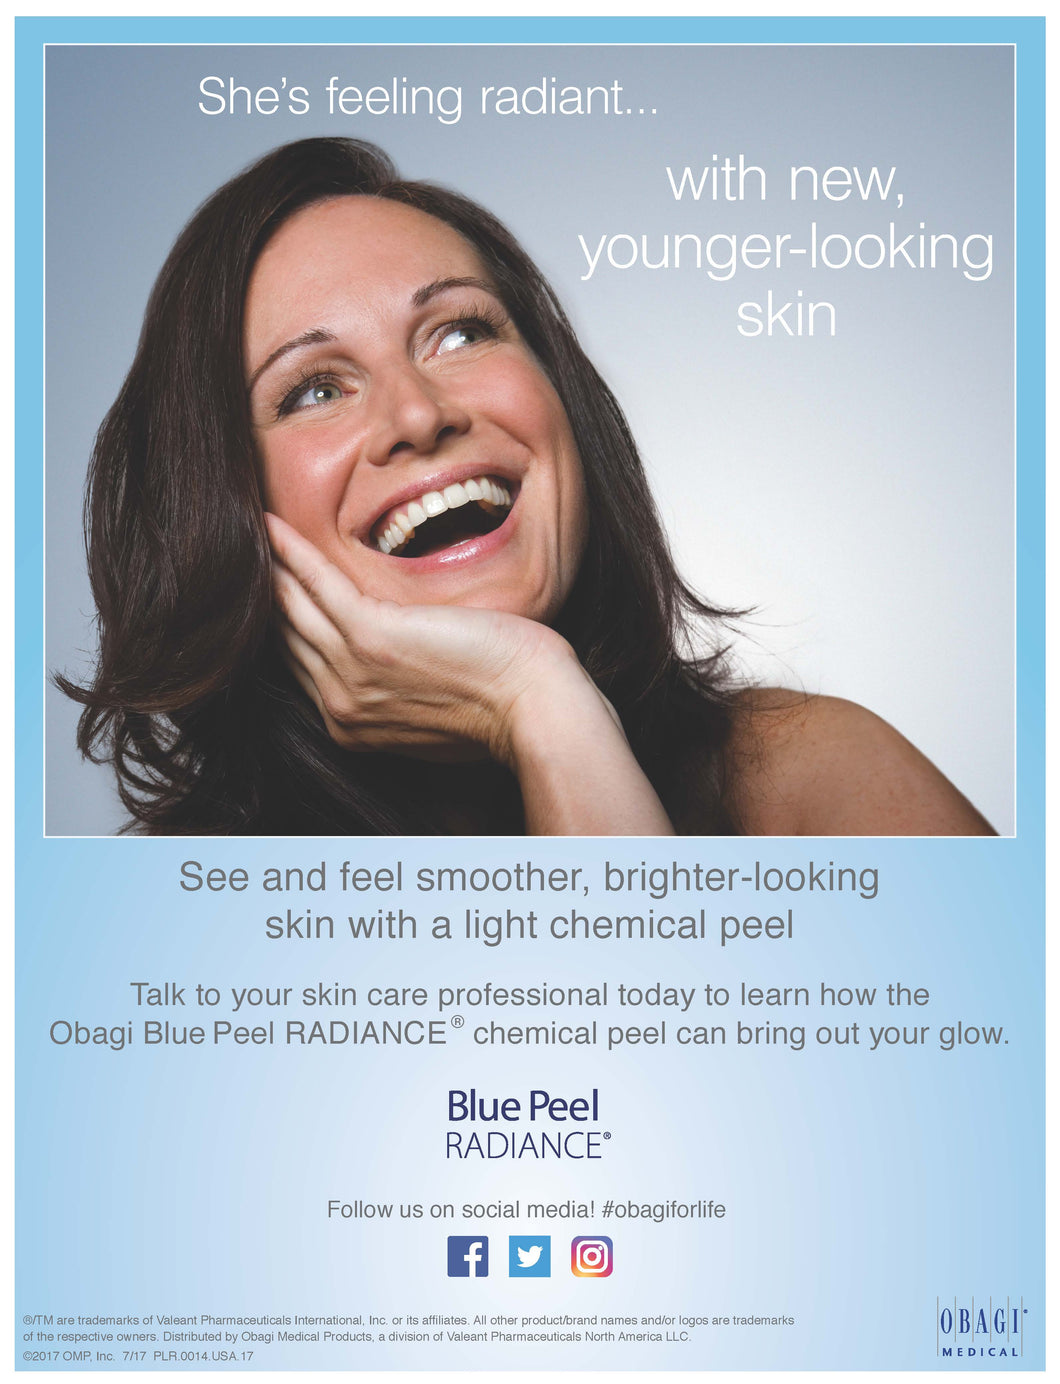 Obagi Blue Peel Radiance - Buy One Get One FREE- Value $160